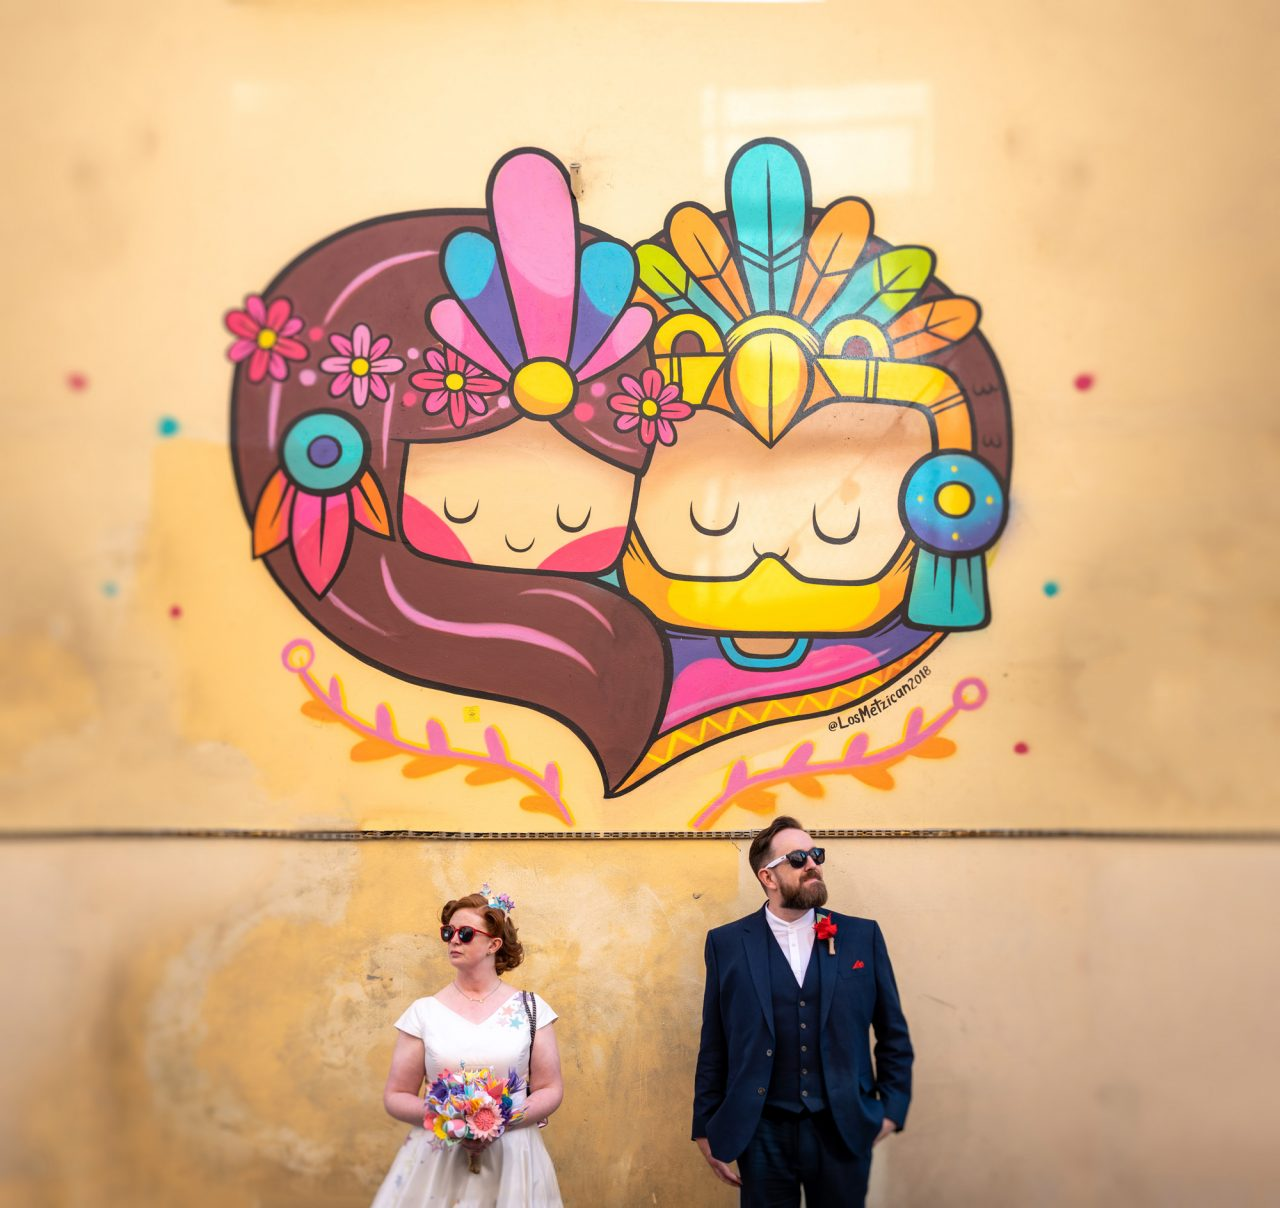 Bride and Groom pose in fron of a wall with cartoon-style graffiti of a couple